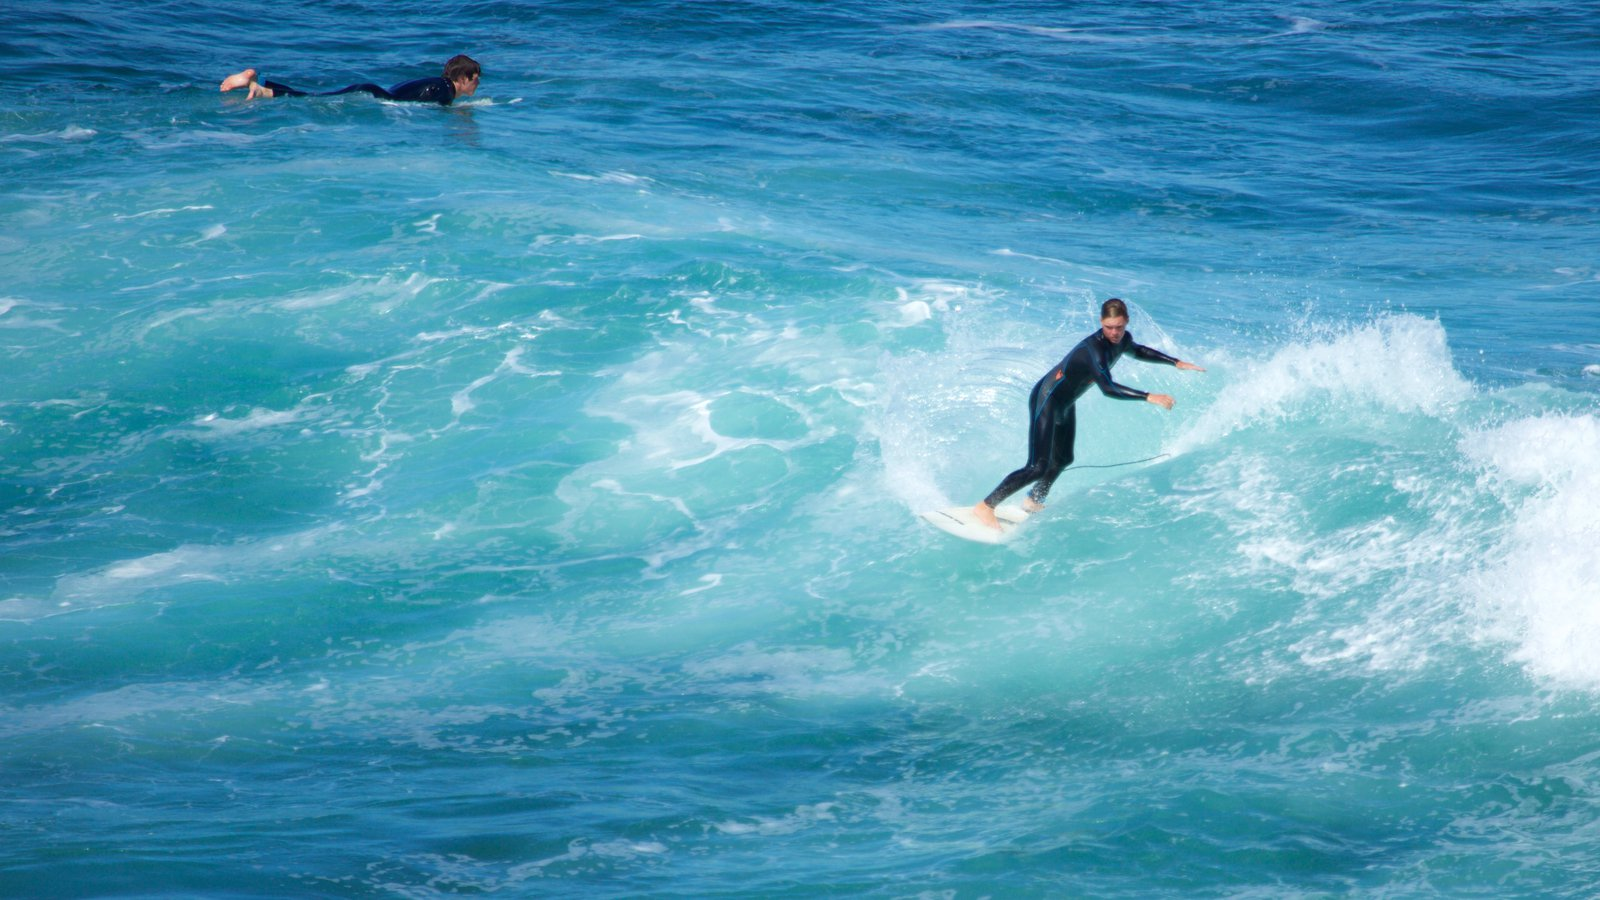 Bell\'s Beach featuring surfing and waves as well as an individual male